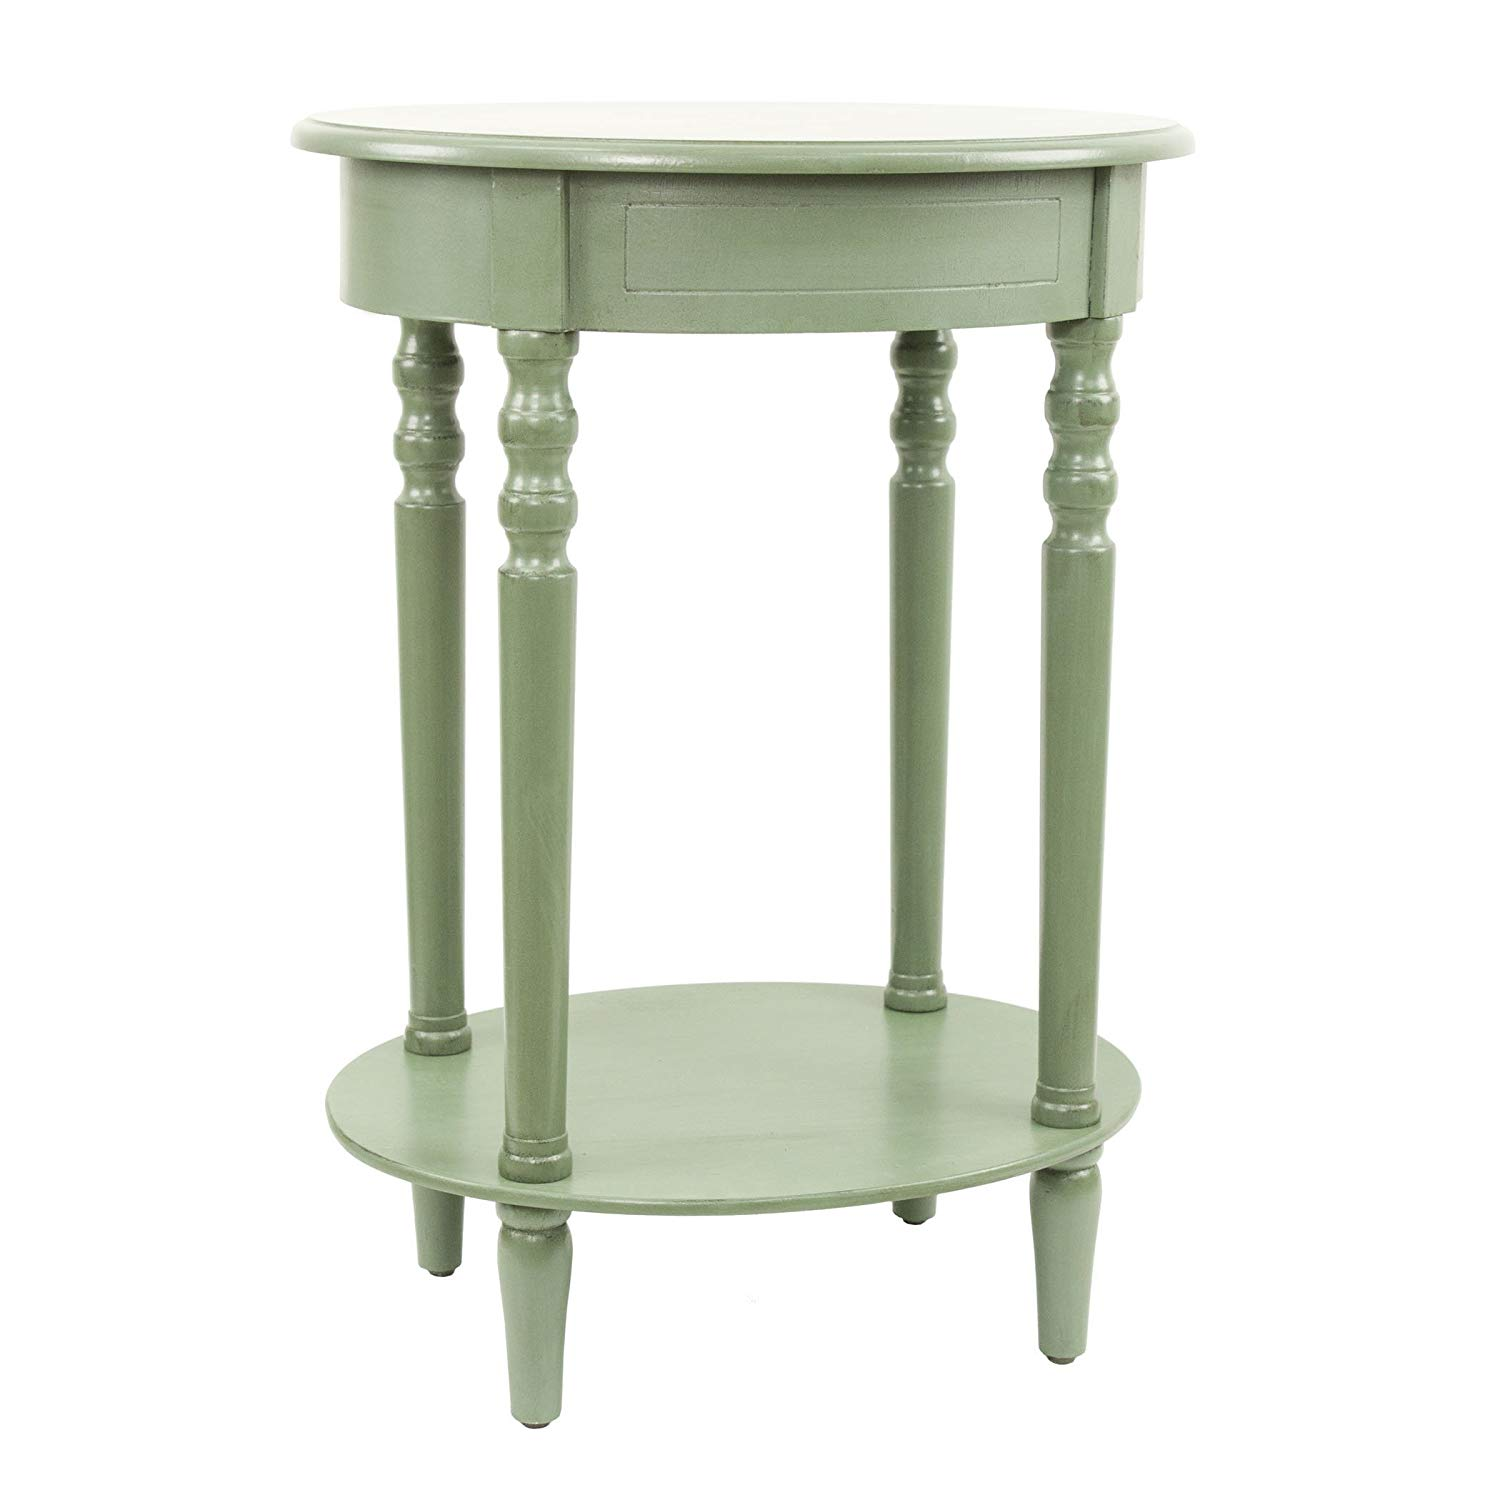 decor therapy simplify oval accent table antique green height kitchen dining grey and white side small half moon hall decorative lamp solid cherry room furniture short outdoor all